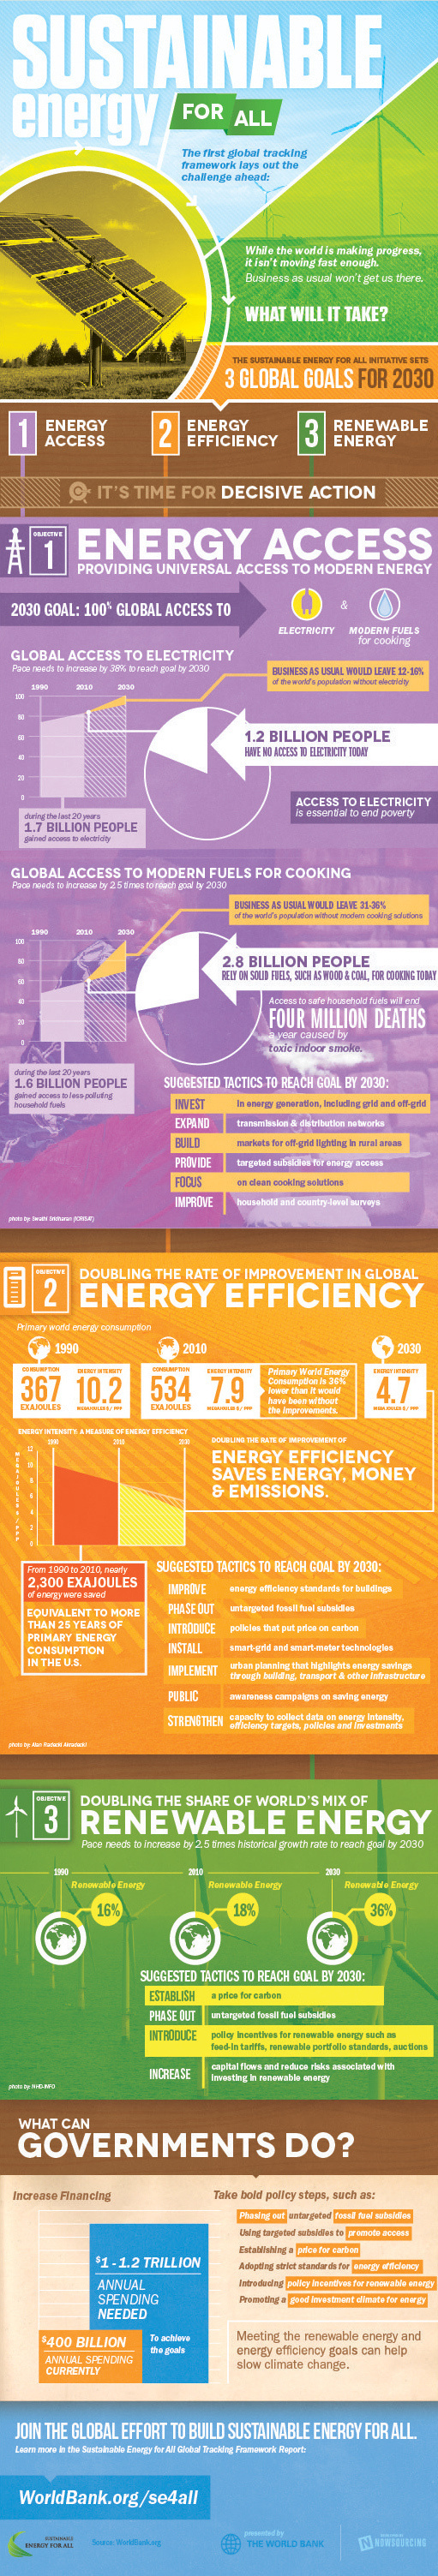 Sustainable Energy for All - What Will It Take? #infographic